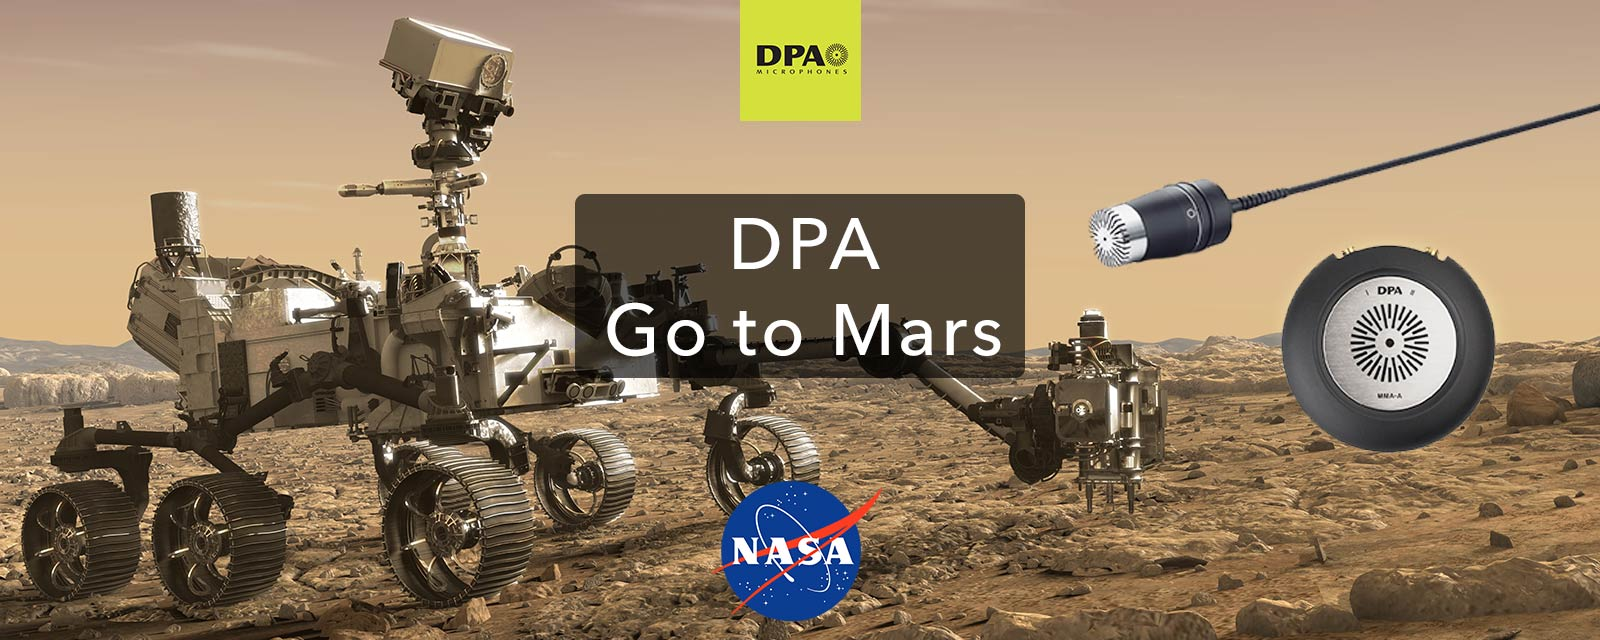 DPA-Gose-to-Mars